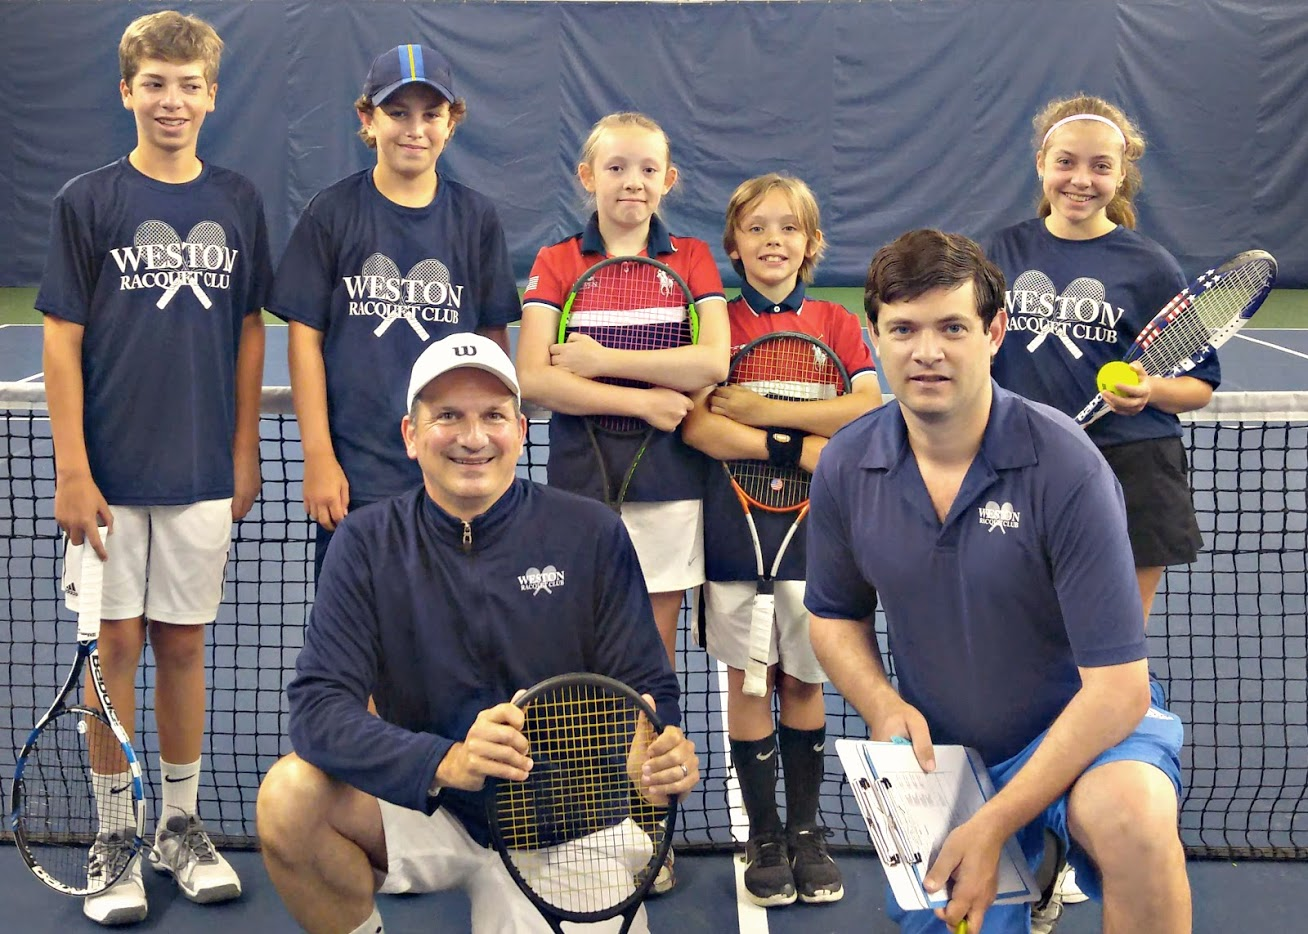 "Caption: Congratulations to the ""Weston Winners"" who clinched the state tennis title going undefeated: L to R (back row) Jackson Carbonier, Billy Mac Clement, Teagan Danzinger, Takoda Danzinger and Calista Finkelstein; (front row) WRC Director of Tennis Angelo A. Rossetti & WRC Coach Jason Fransen"